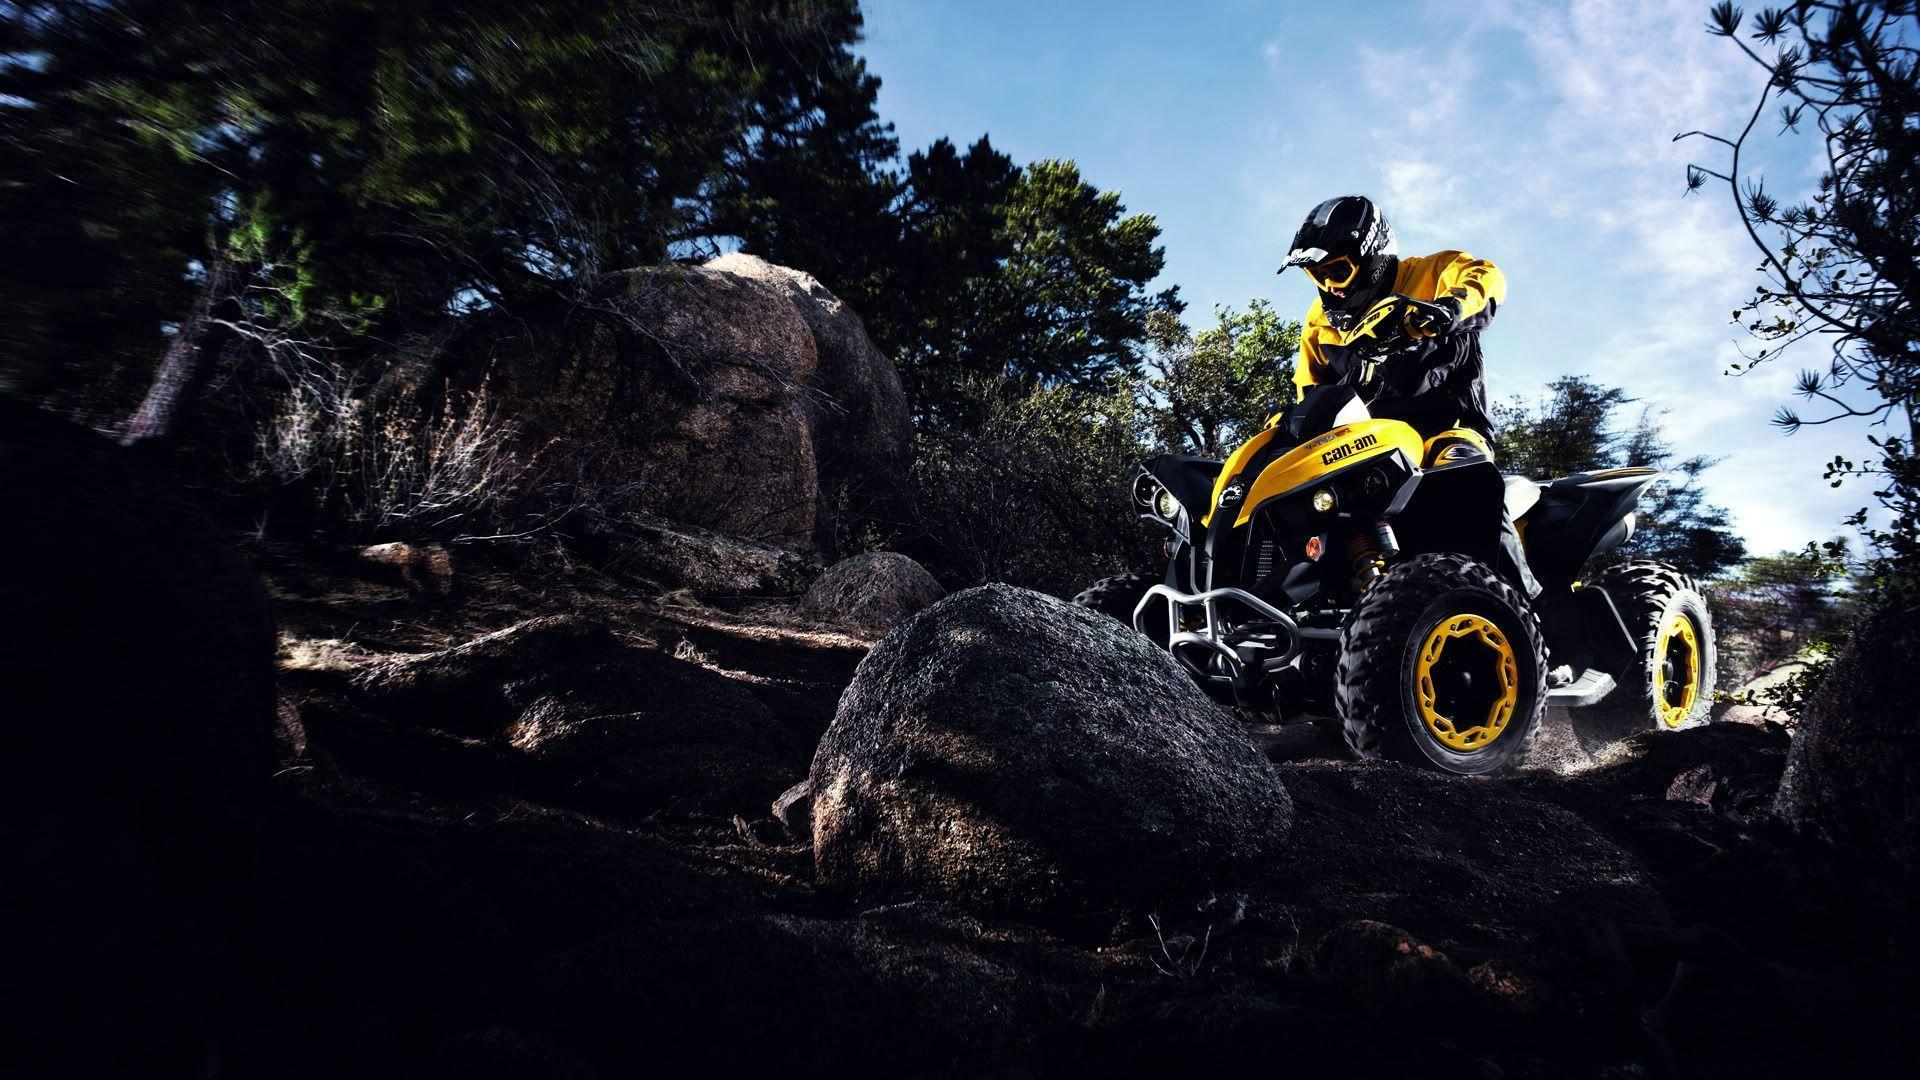 21 Awesome HD ATV Wallpapers - HDWallSource.com